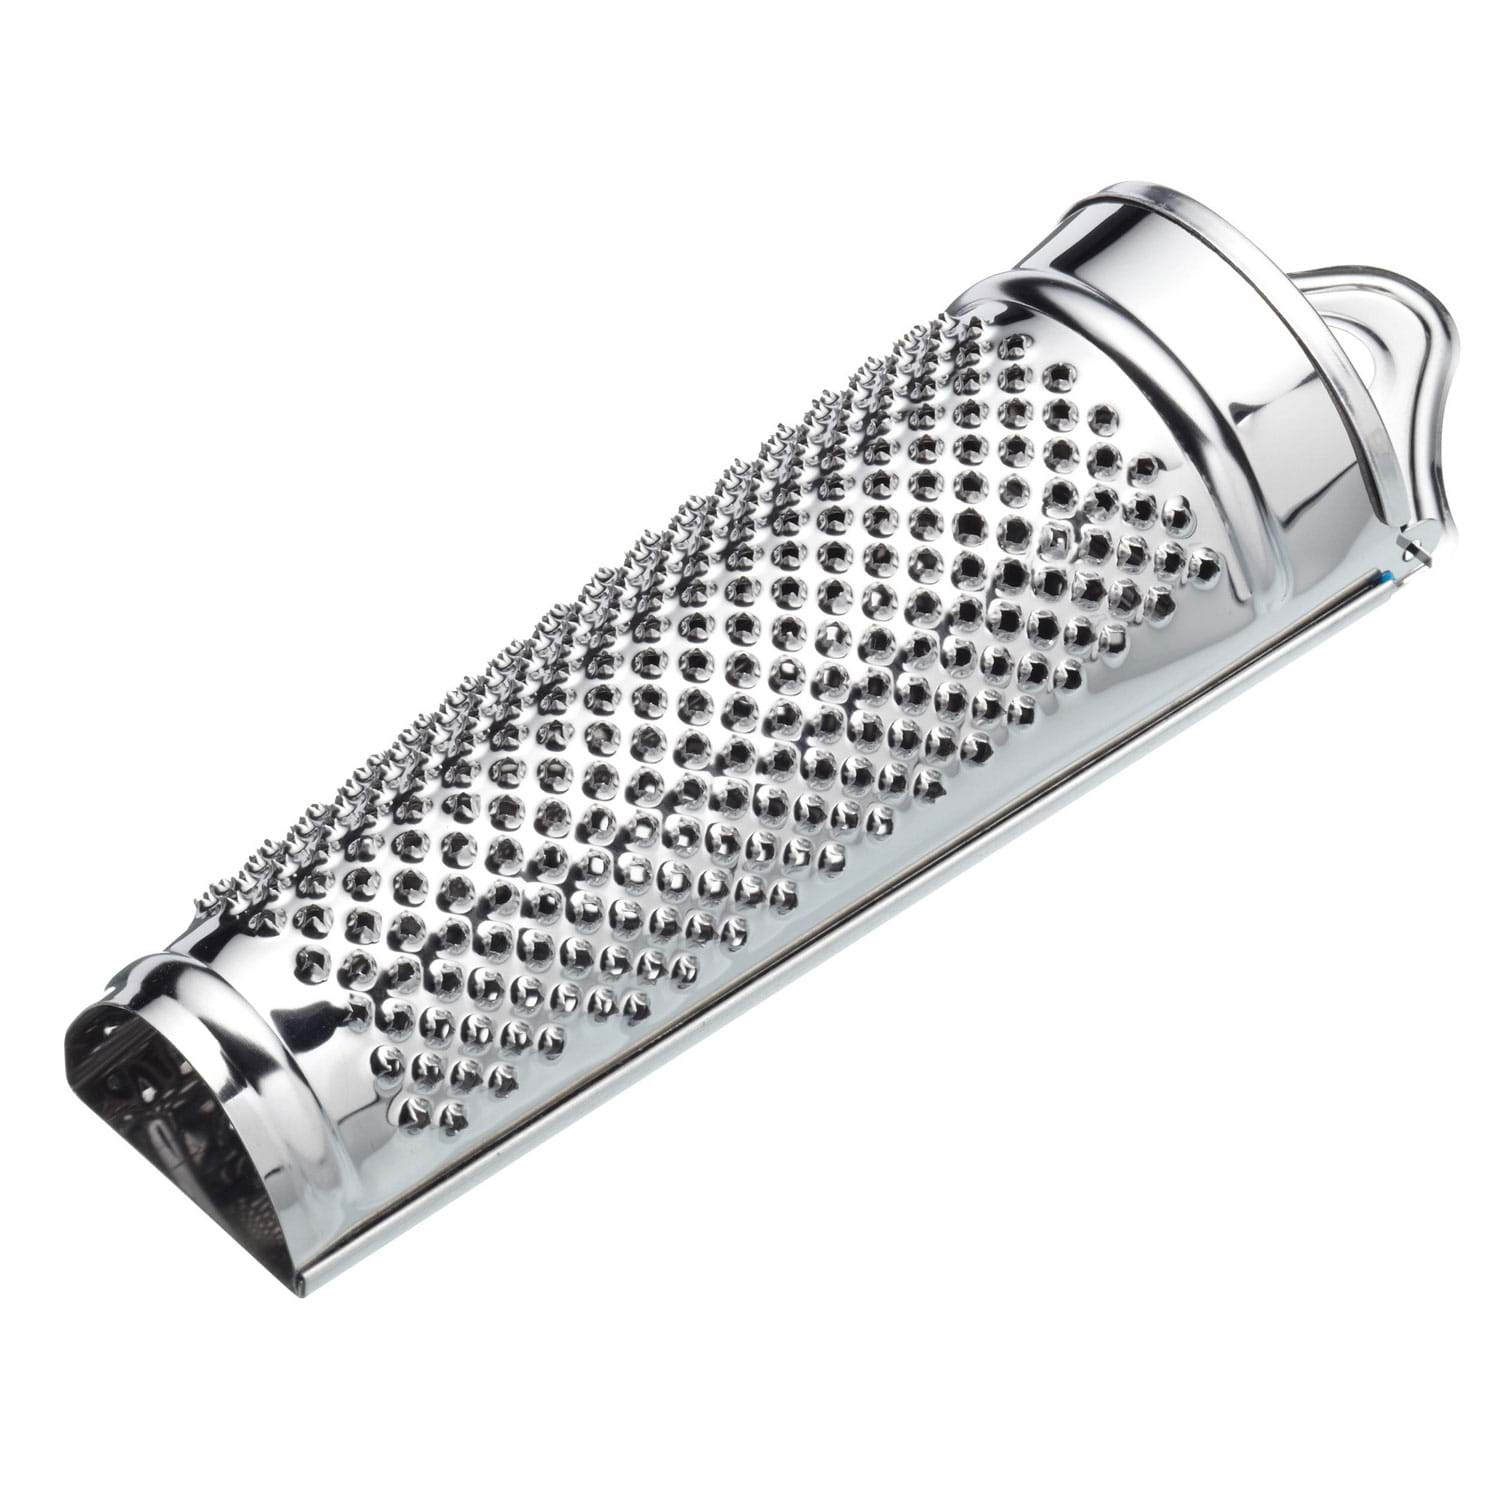 Image of Kitchencraft Stainless Steel Nutmeg And Spice Grater